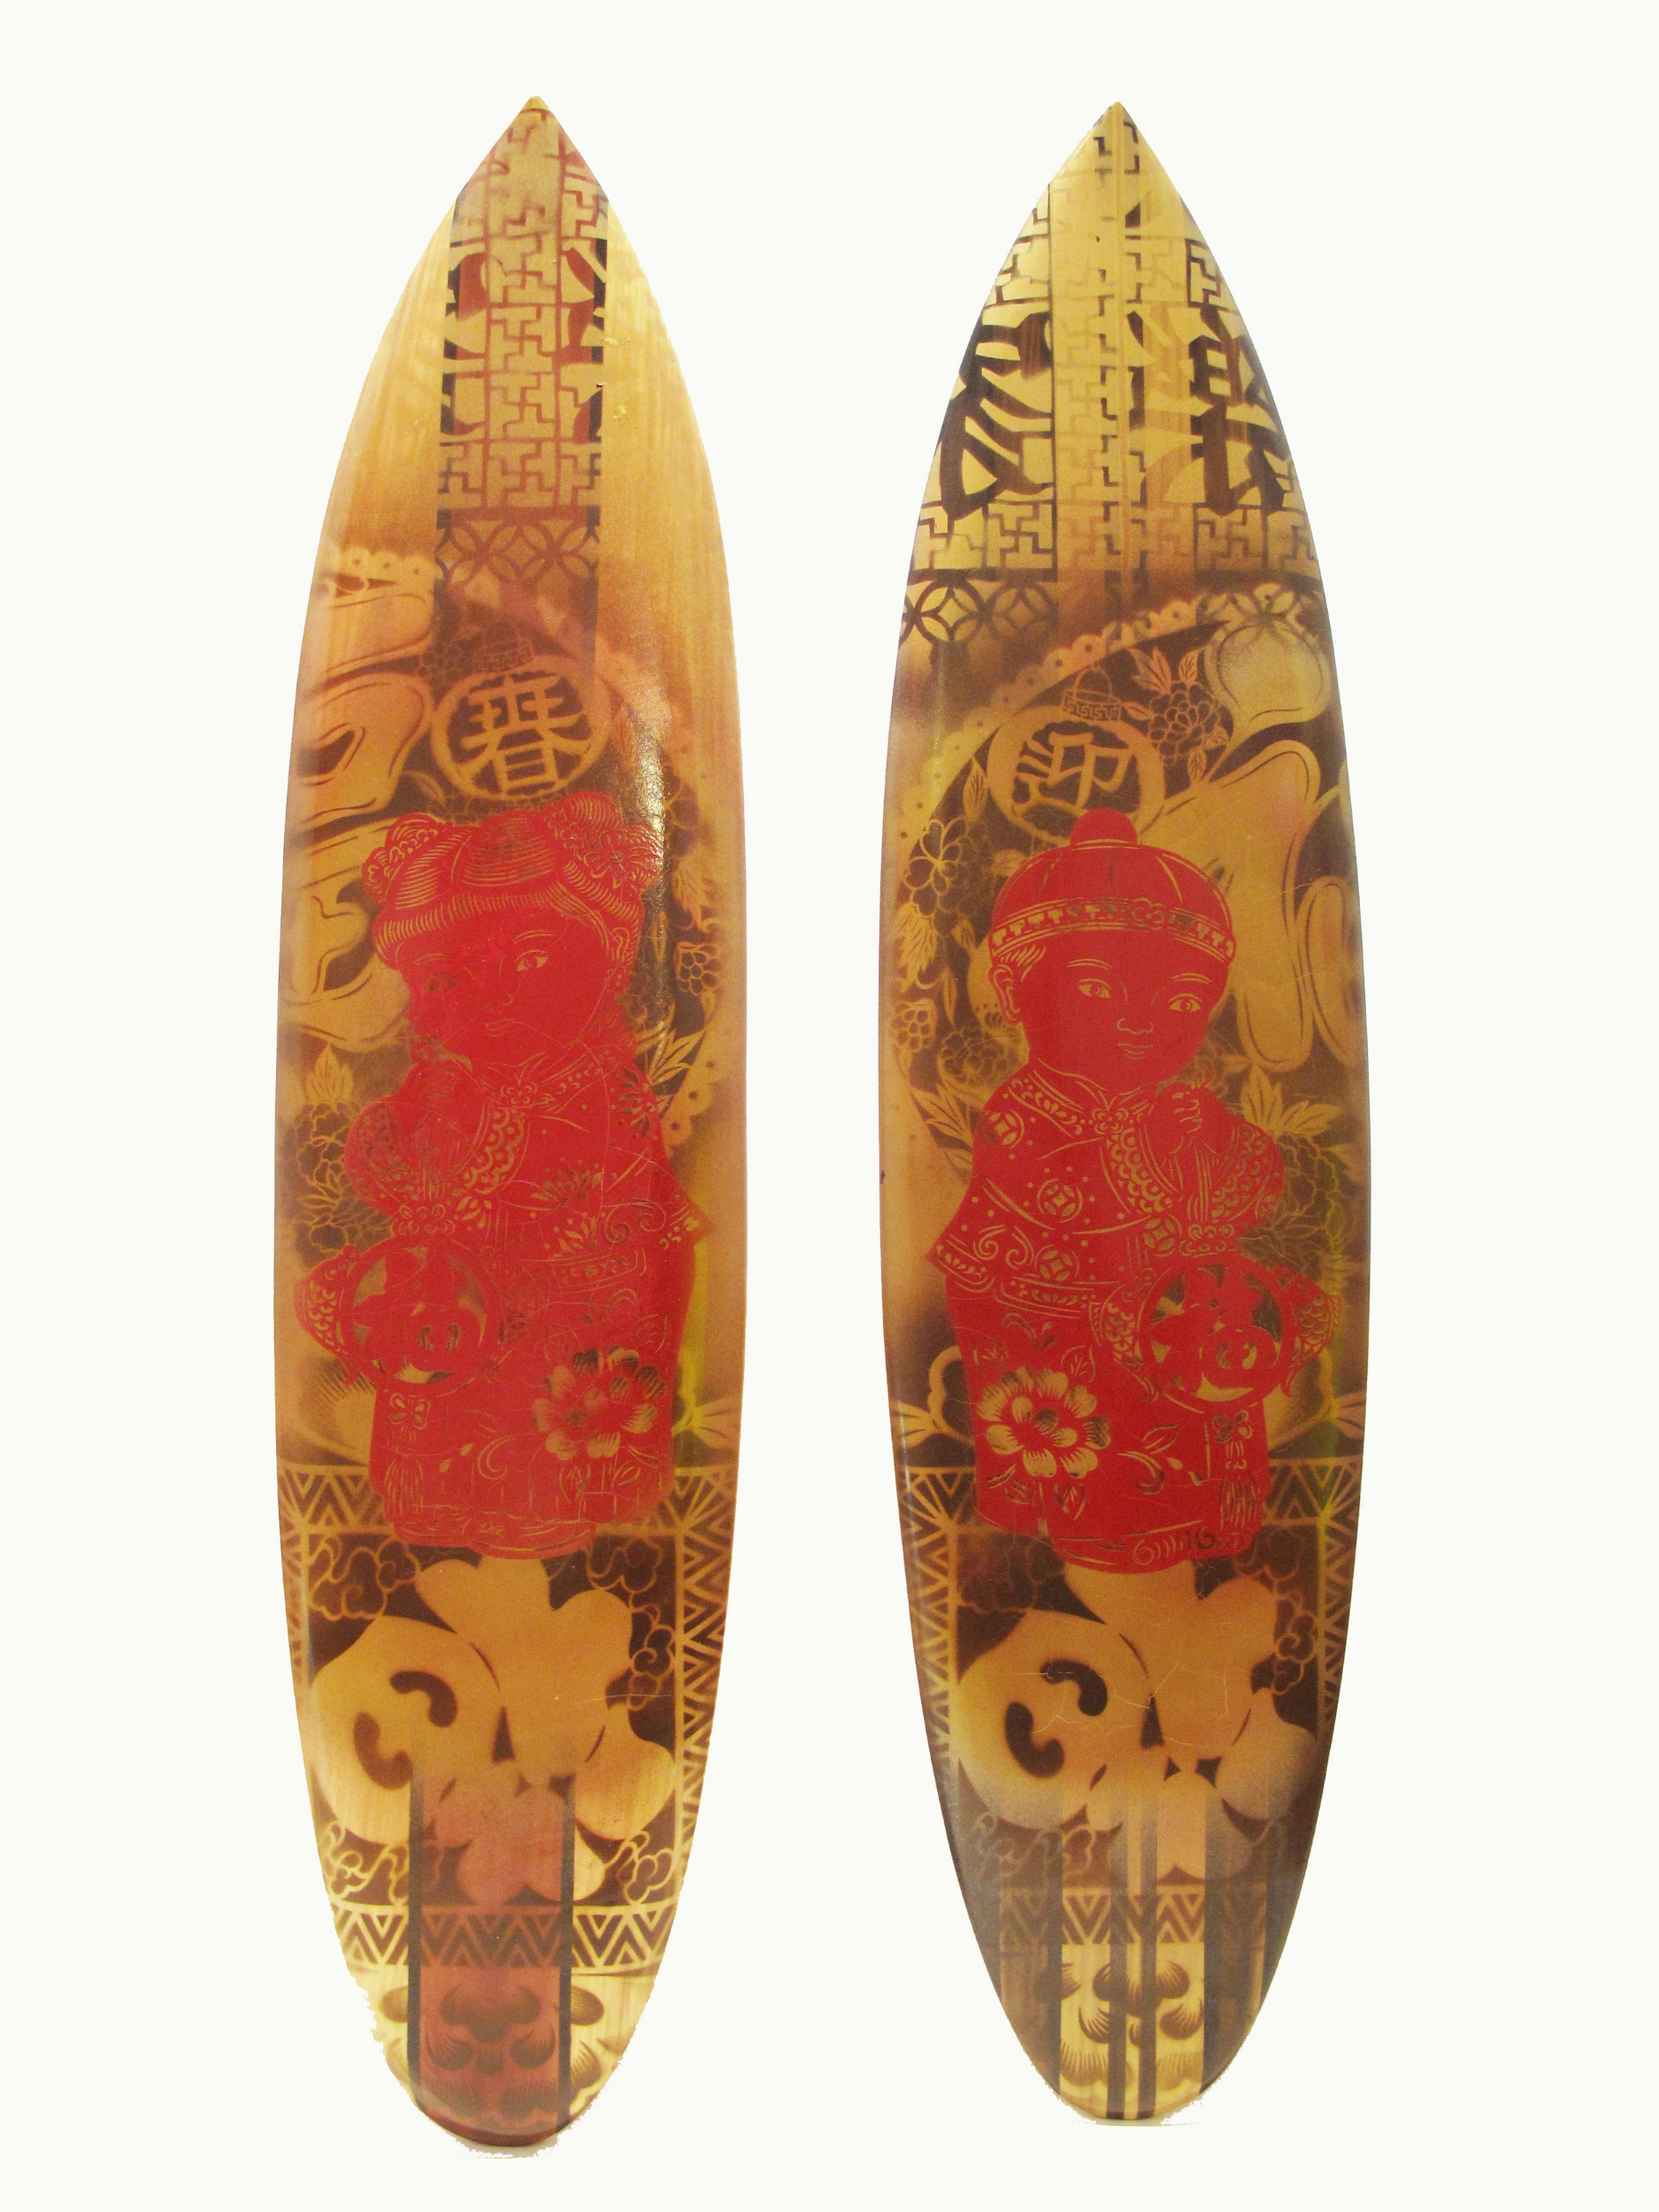 """Good Luck"" Mixed media on 2 surfboards (Bali timber) 2 x 25 x 100 cm 2013"